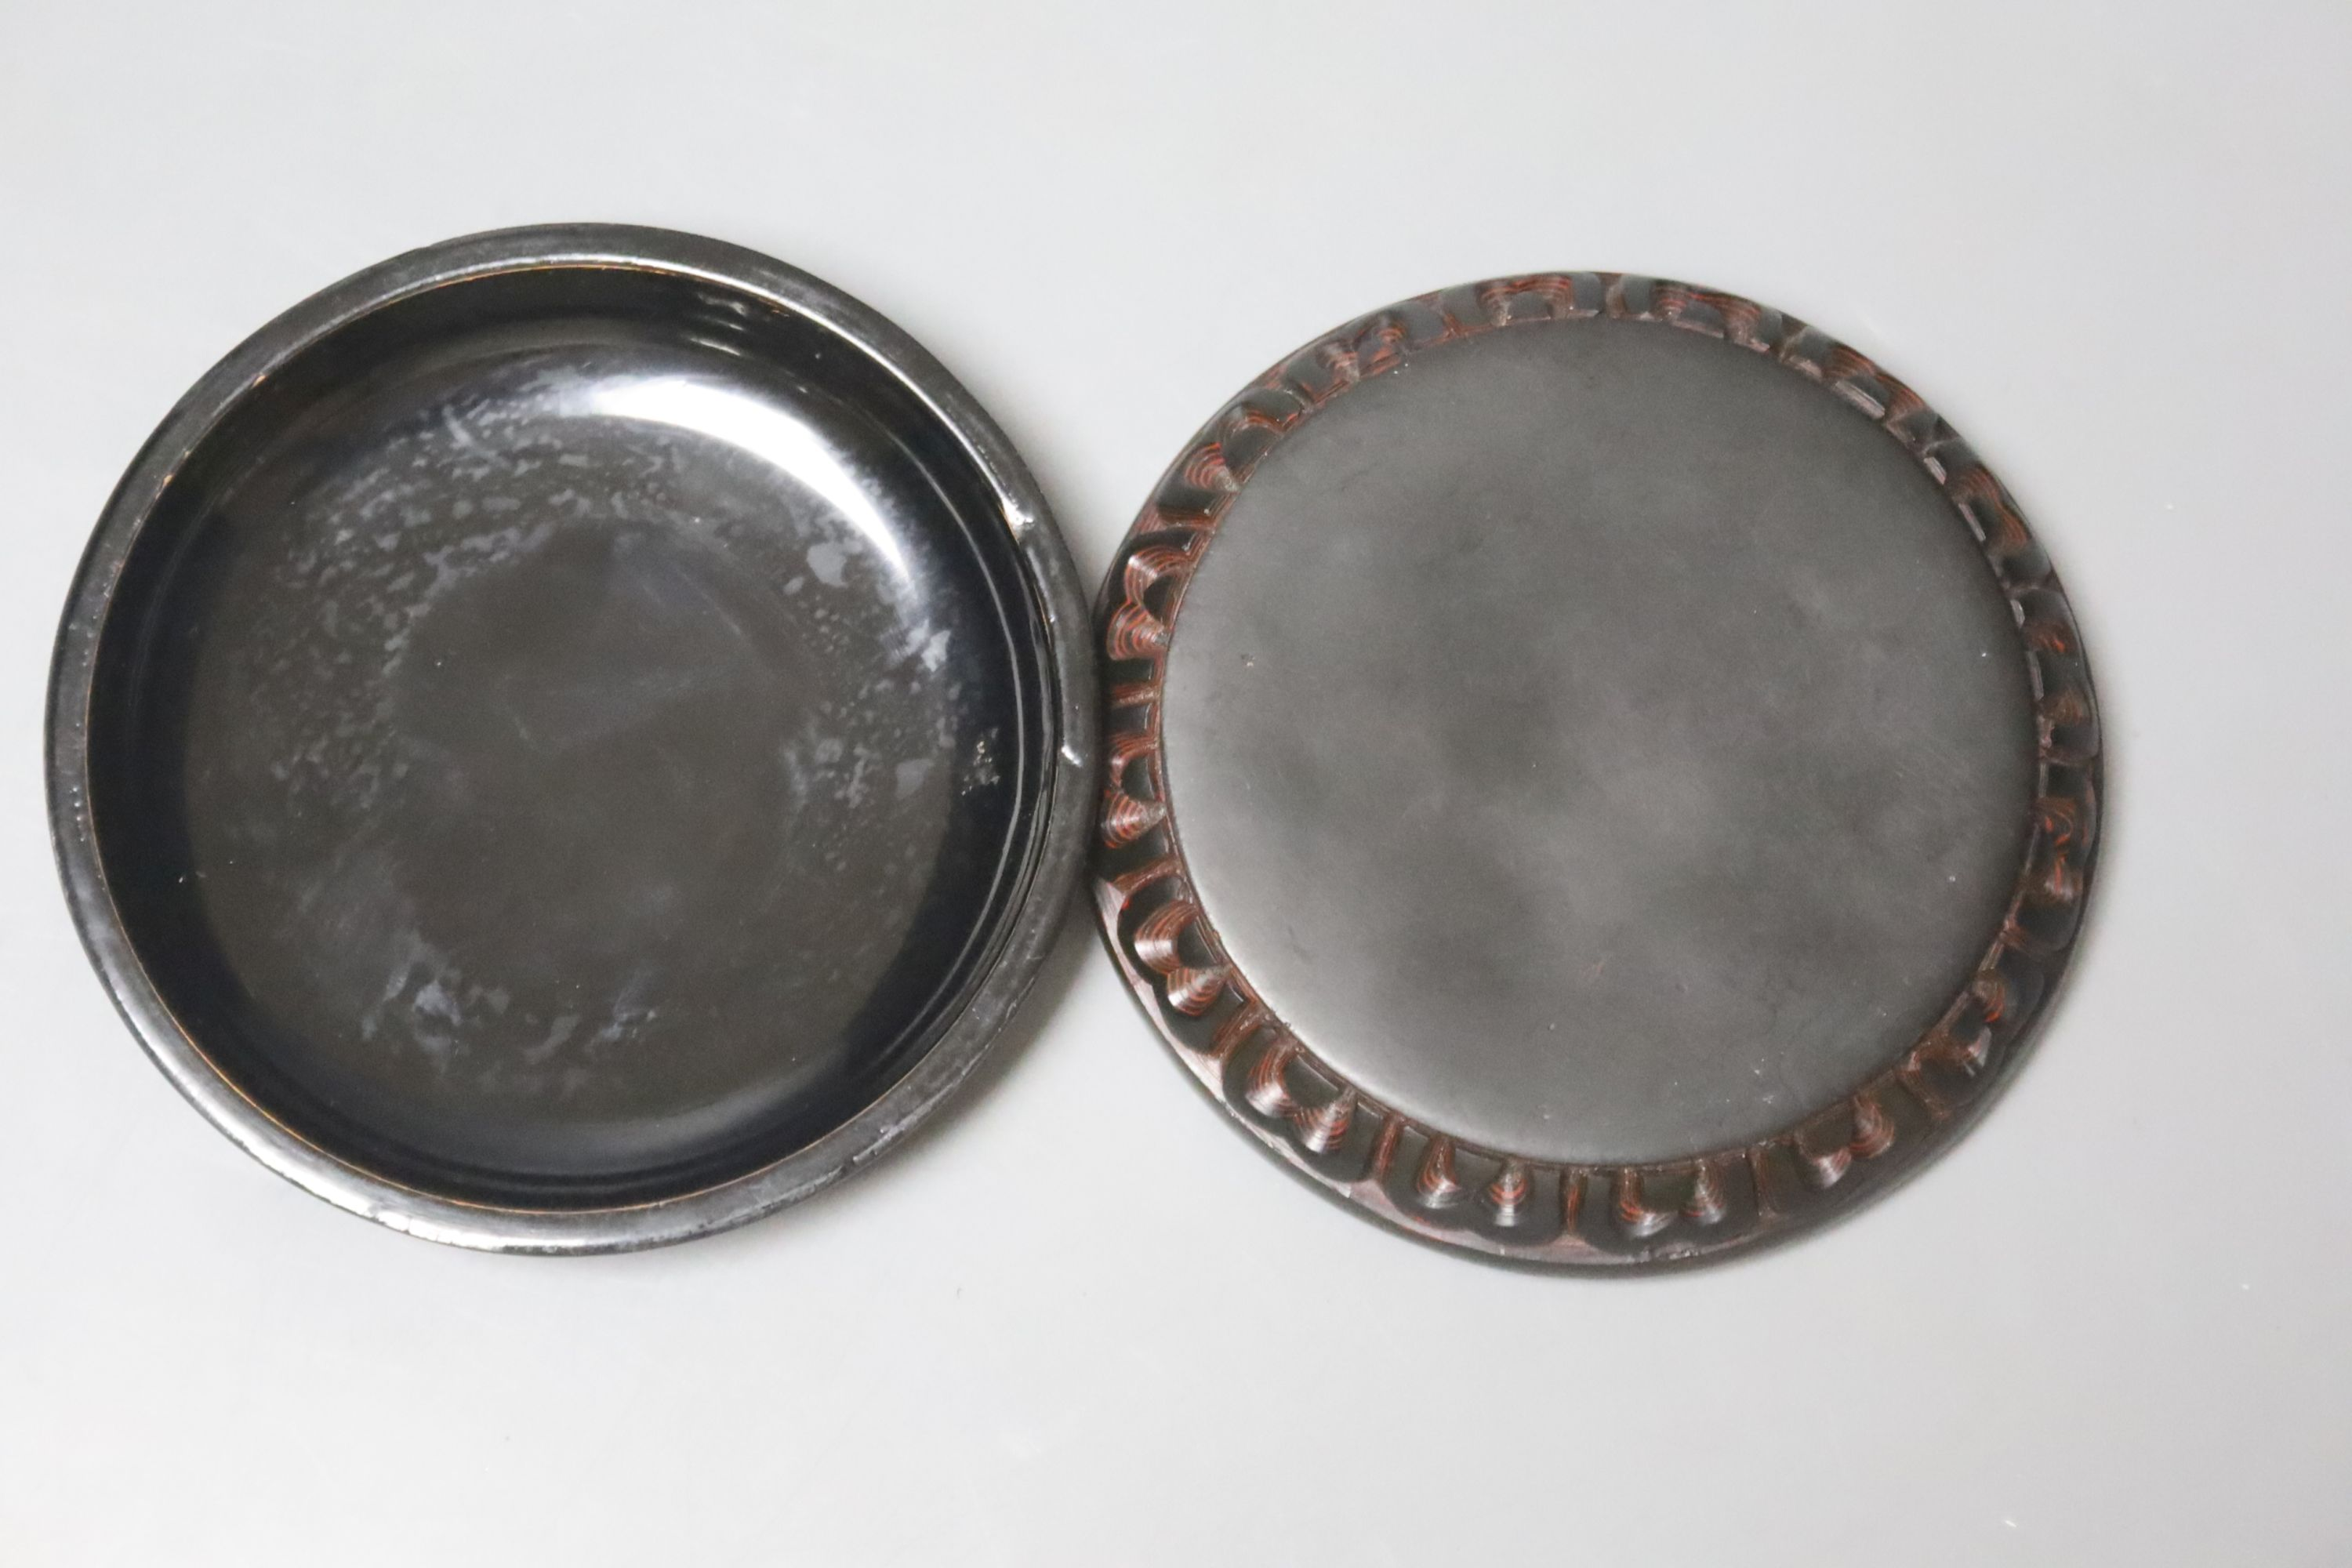 A Chinese 'tixi' lacquer circular box and cover, 8cm diameter - Image 3 of 3